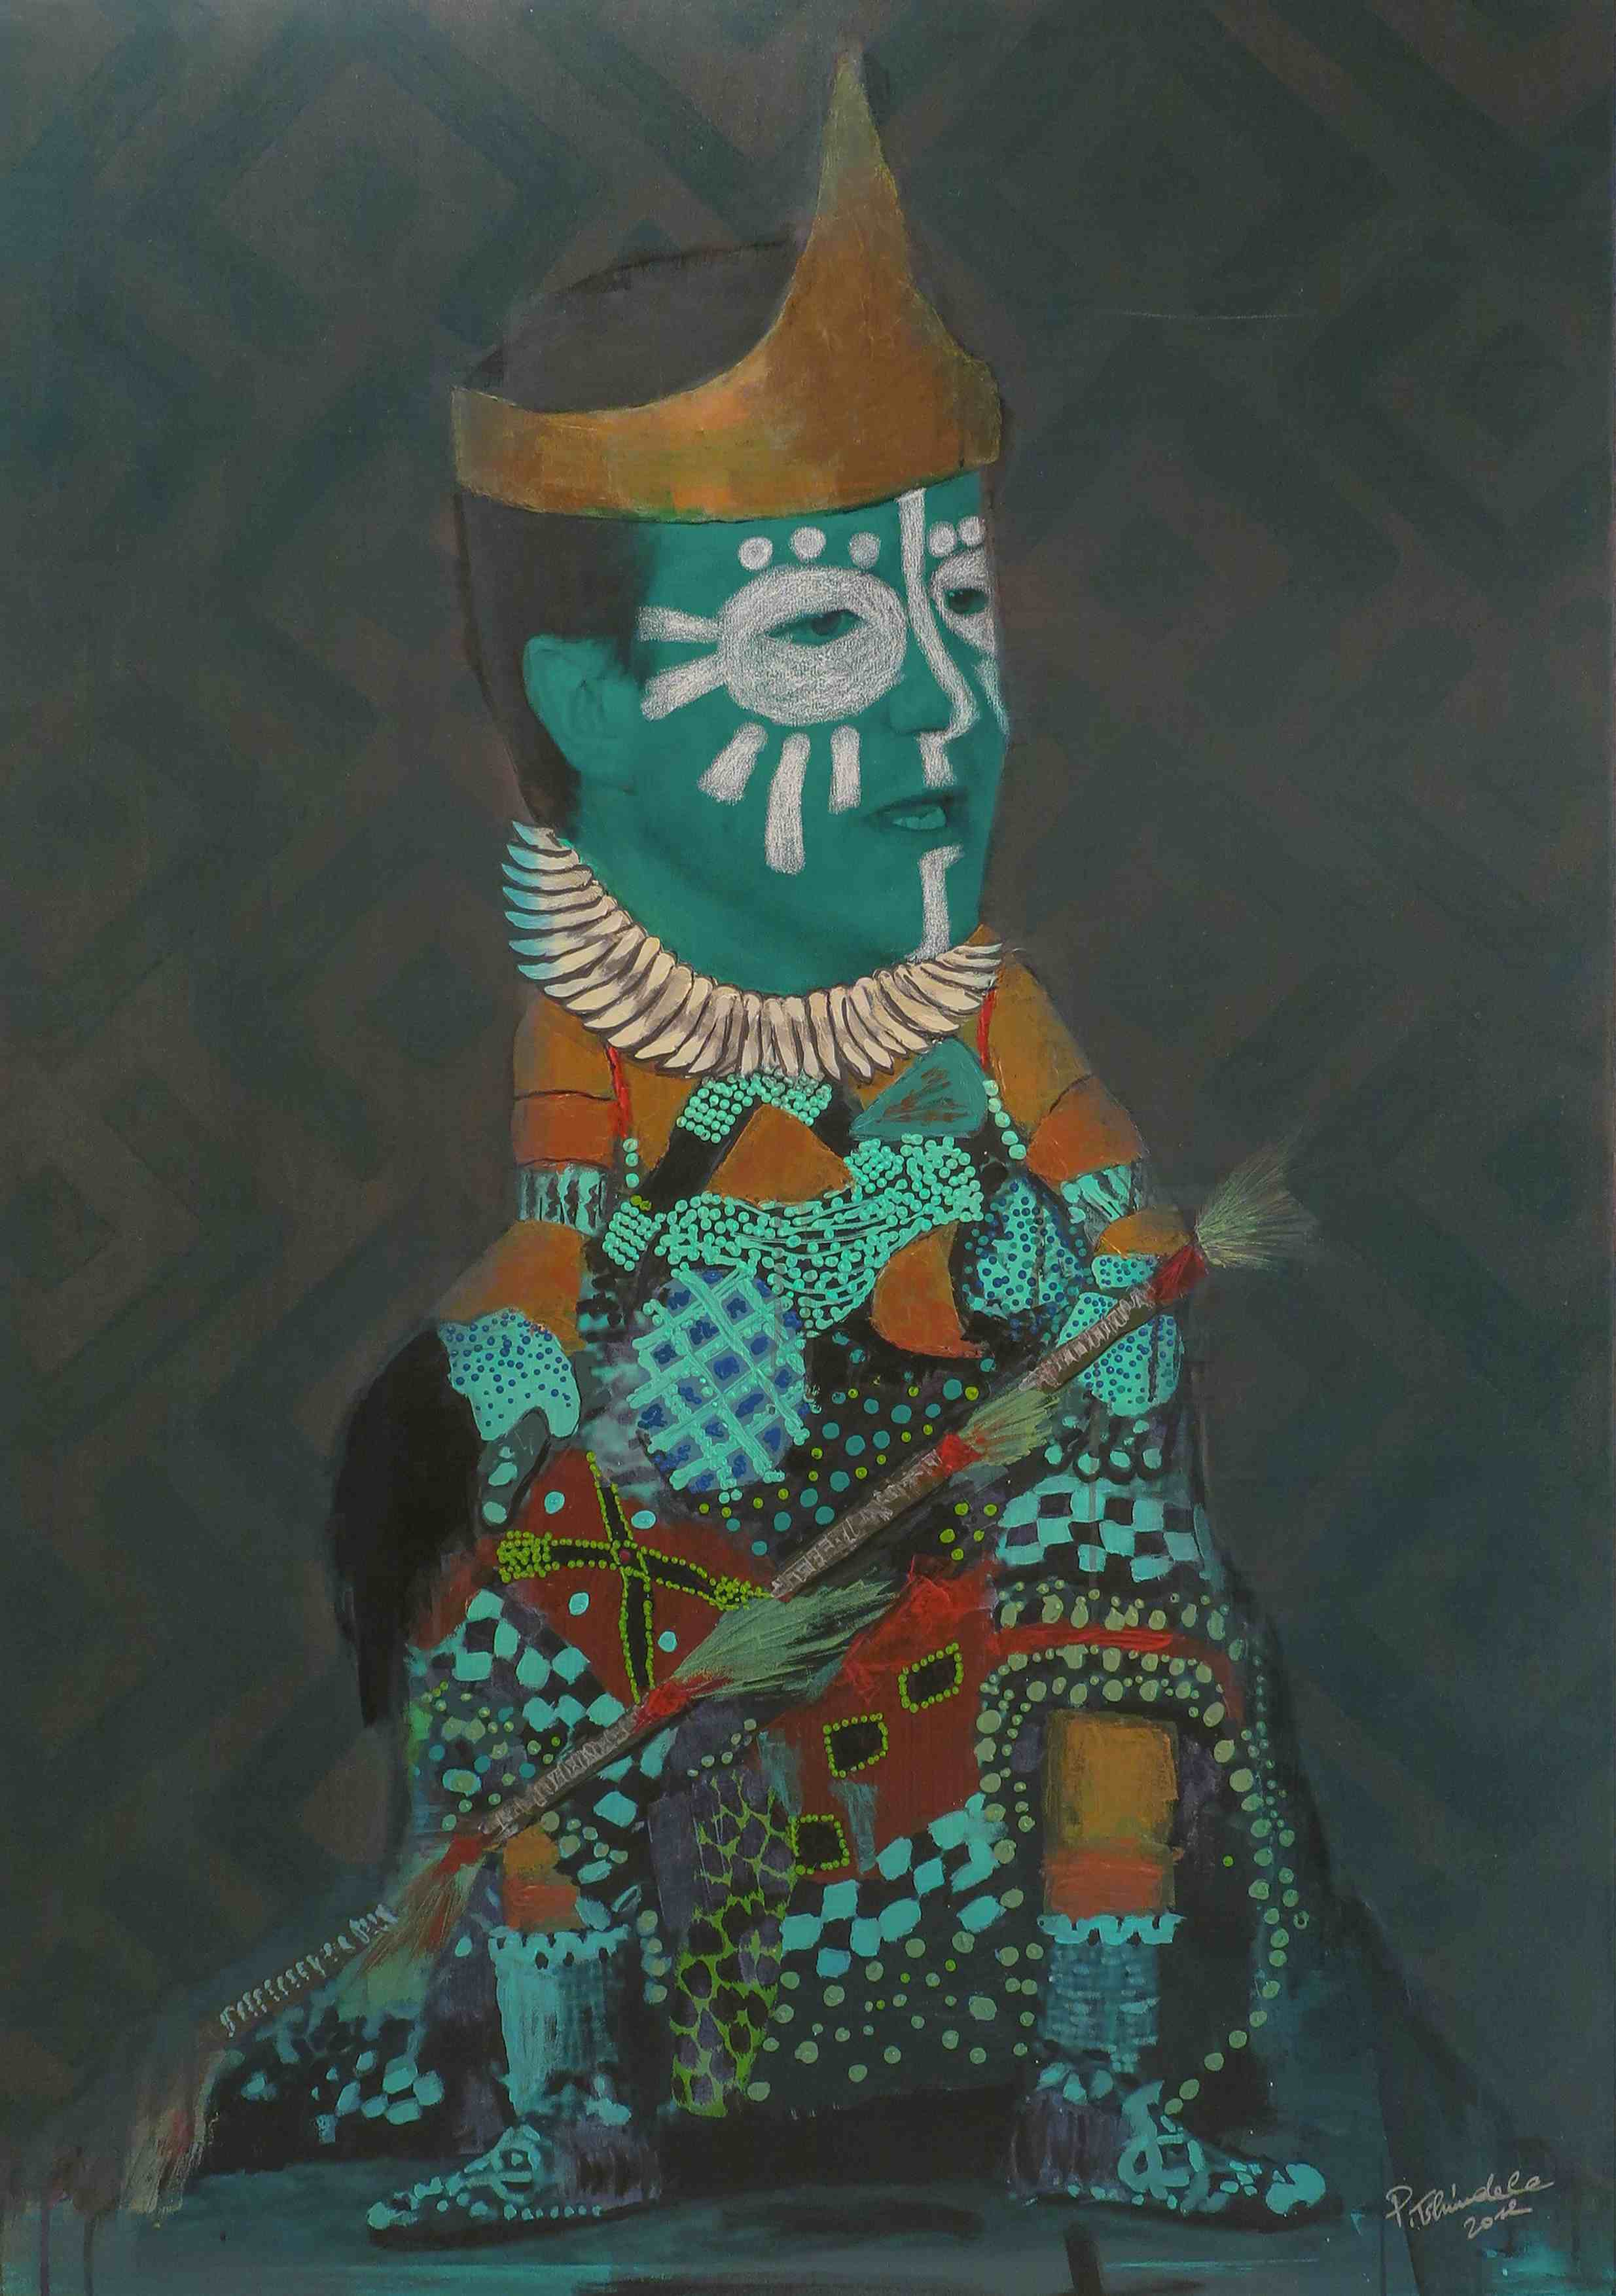 Pathy Tshindele, 'Sans Titre', 2012, Acrylic on canvas, 125.5 x 89.5 cm, Courtesy of Galerie MAGNIN-A